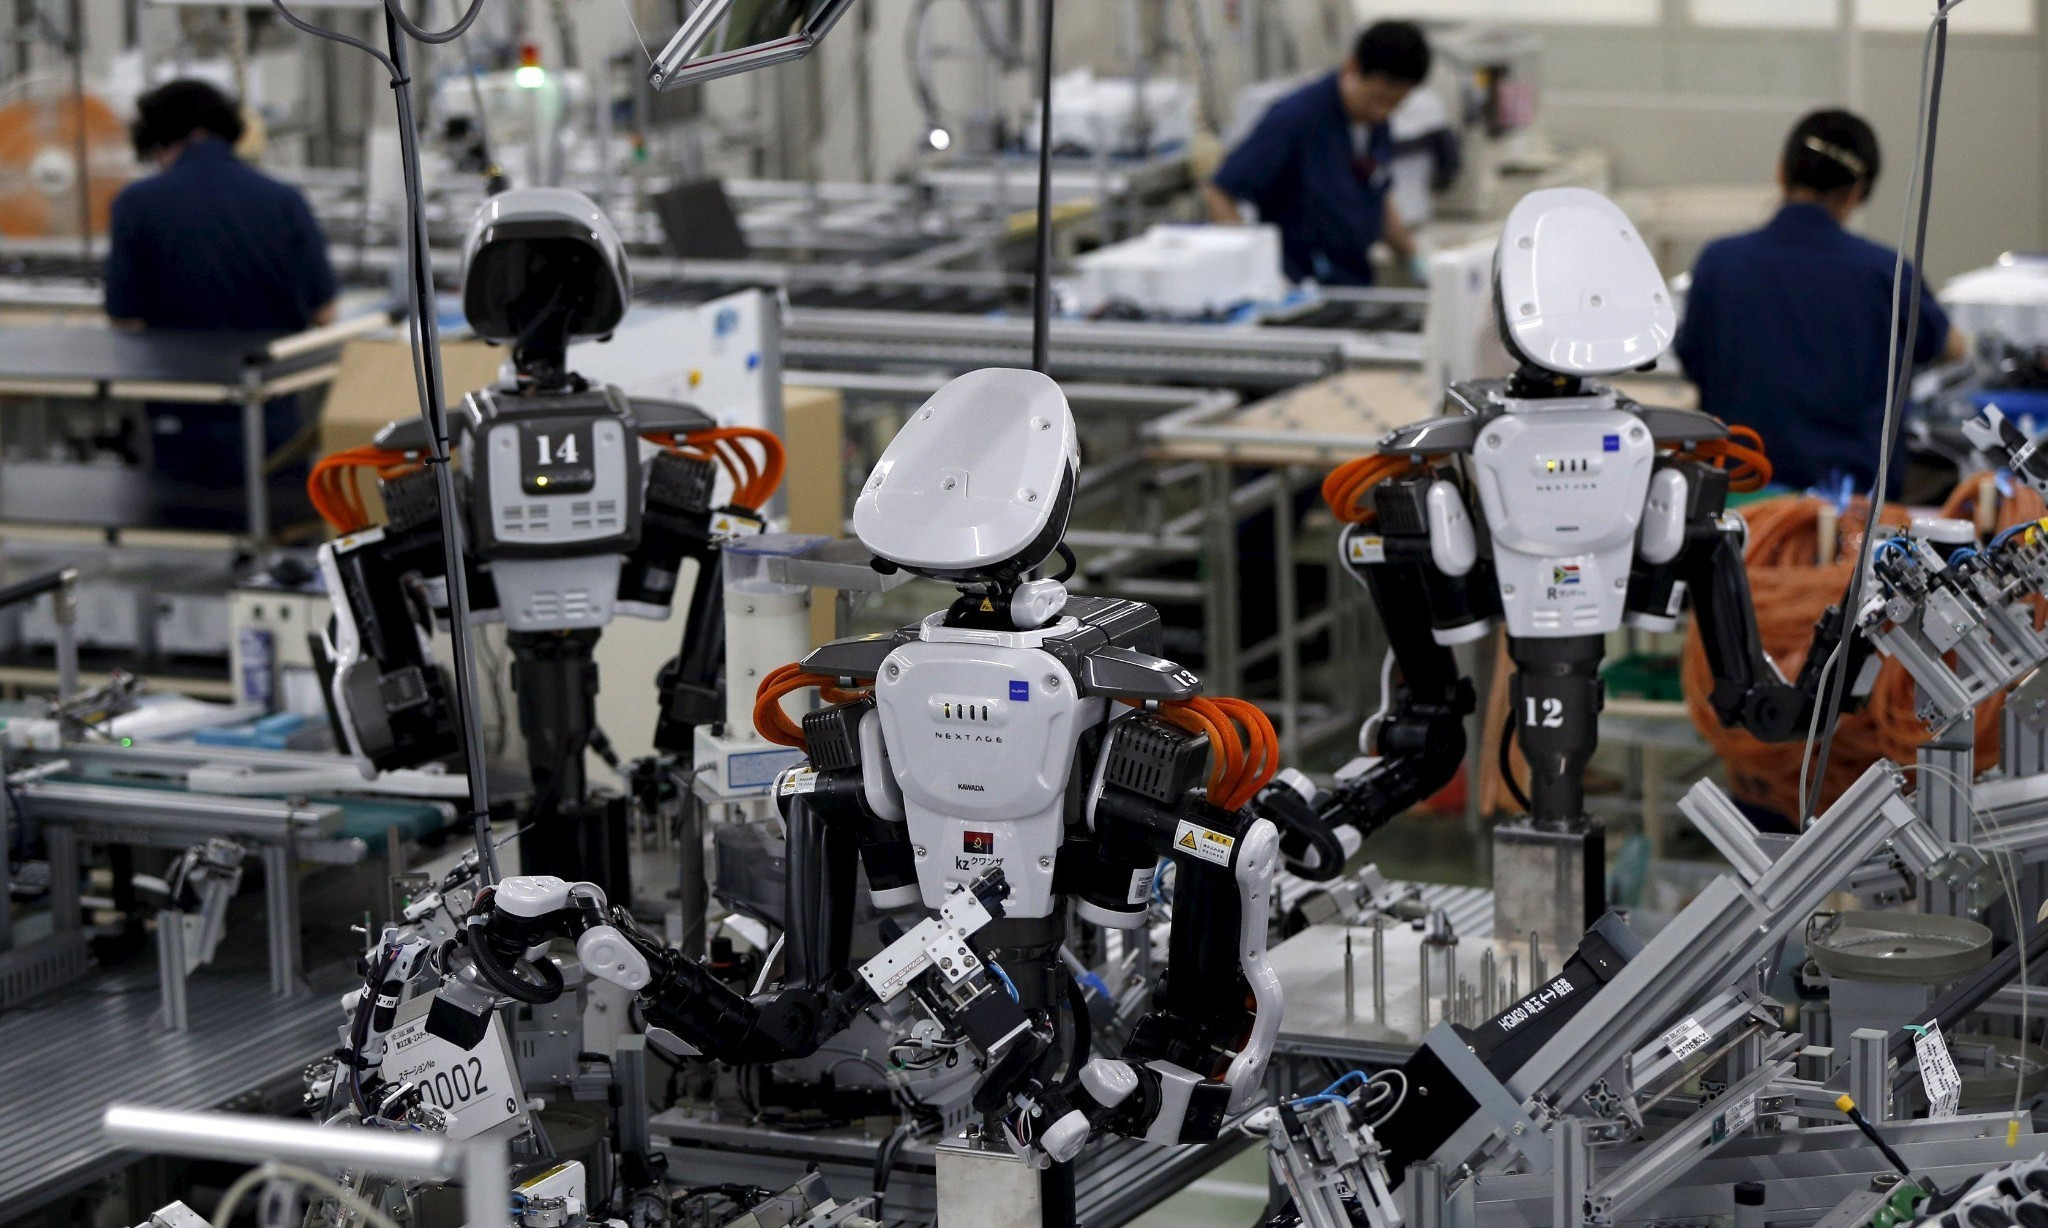 When robots do all the work, how will people live?